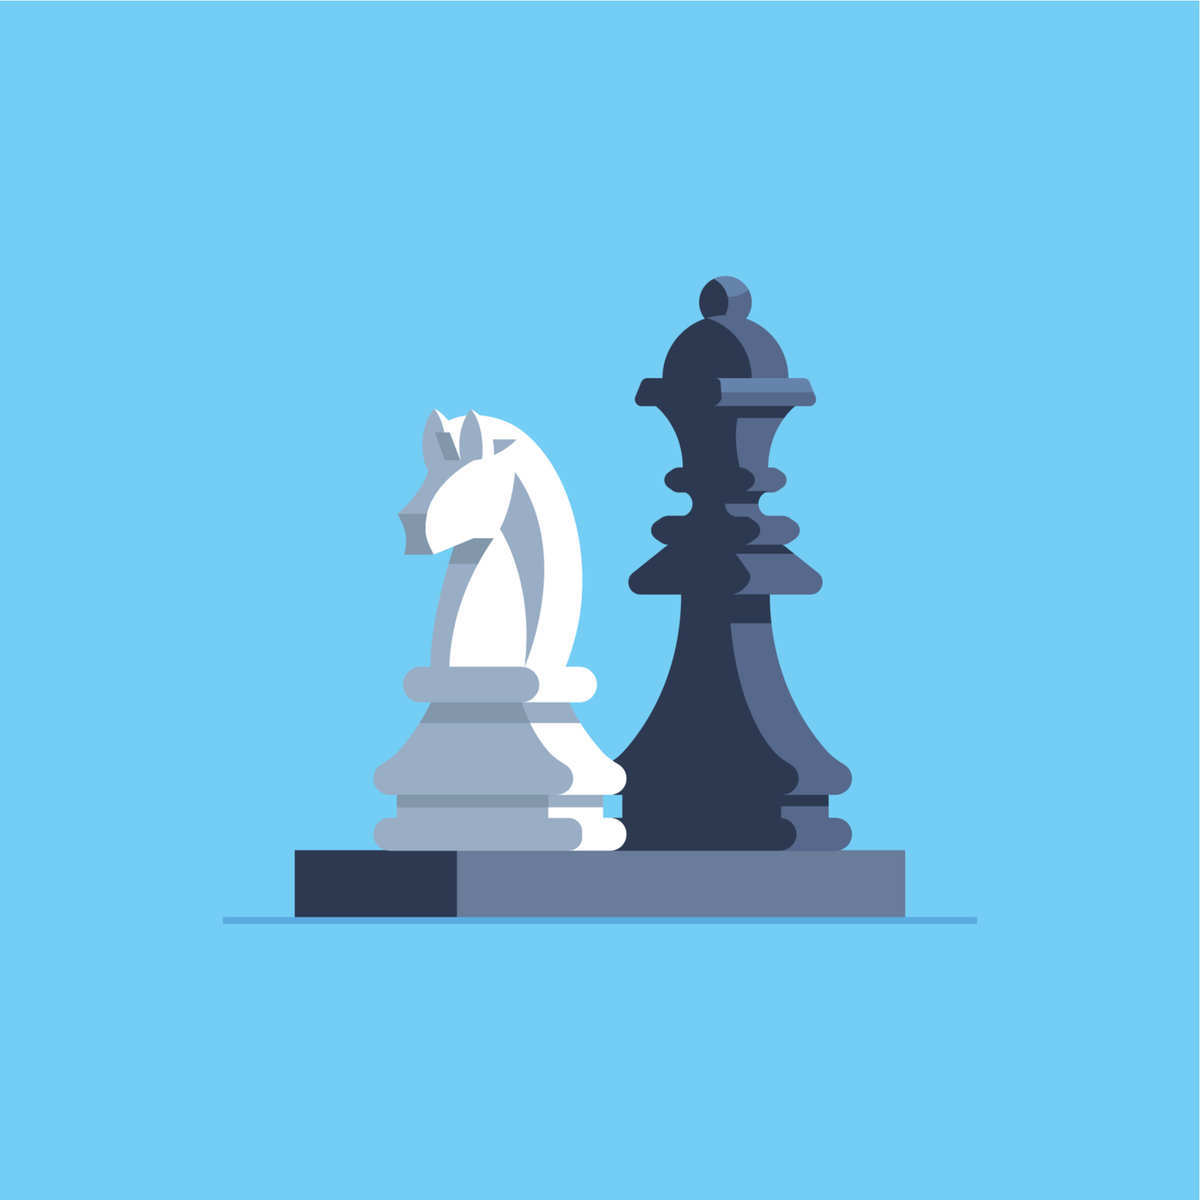 Illustration of two chess figures.